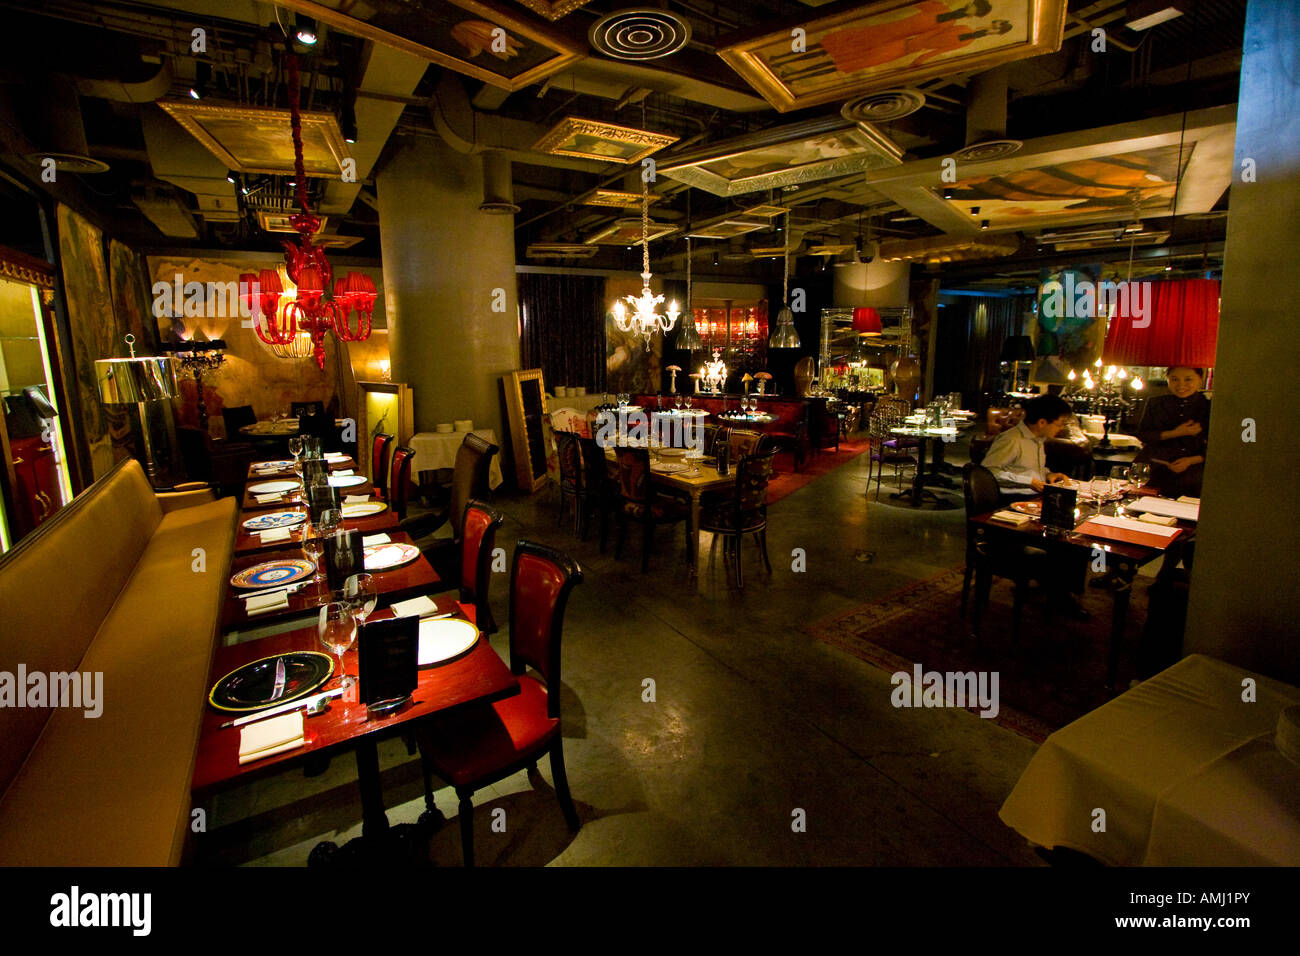 Lan an Upscale Restaurant Designed by Philippe Starck Beijing China Stock Photo